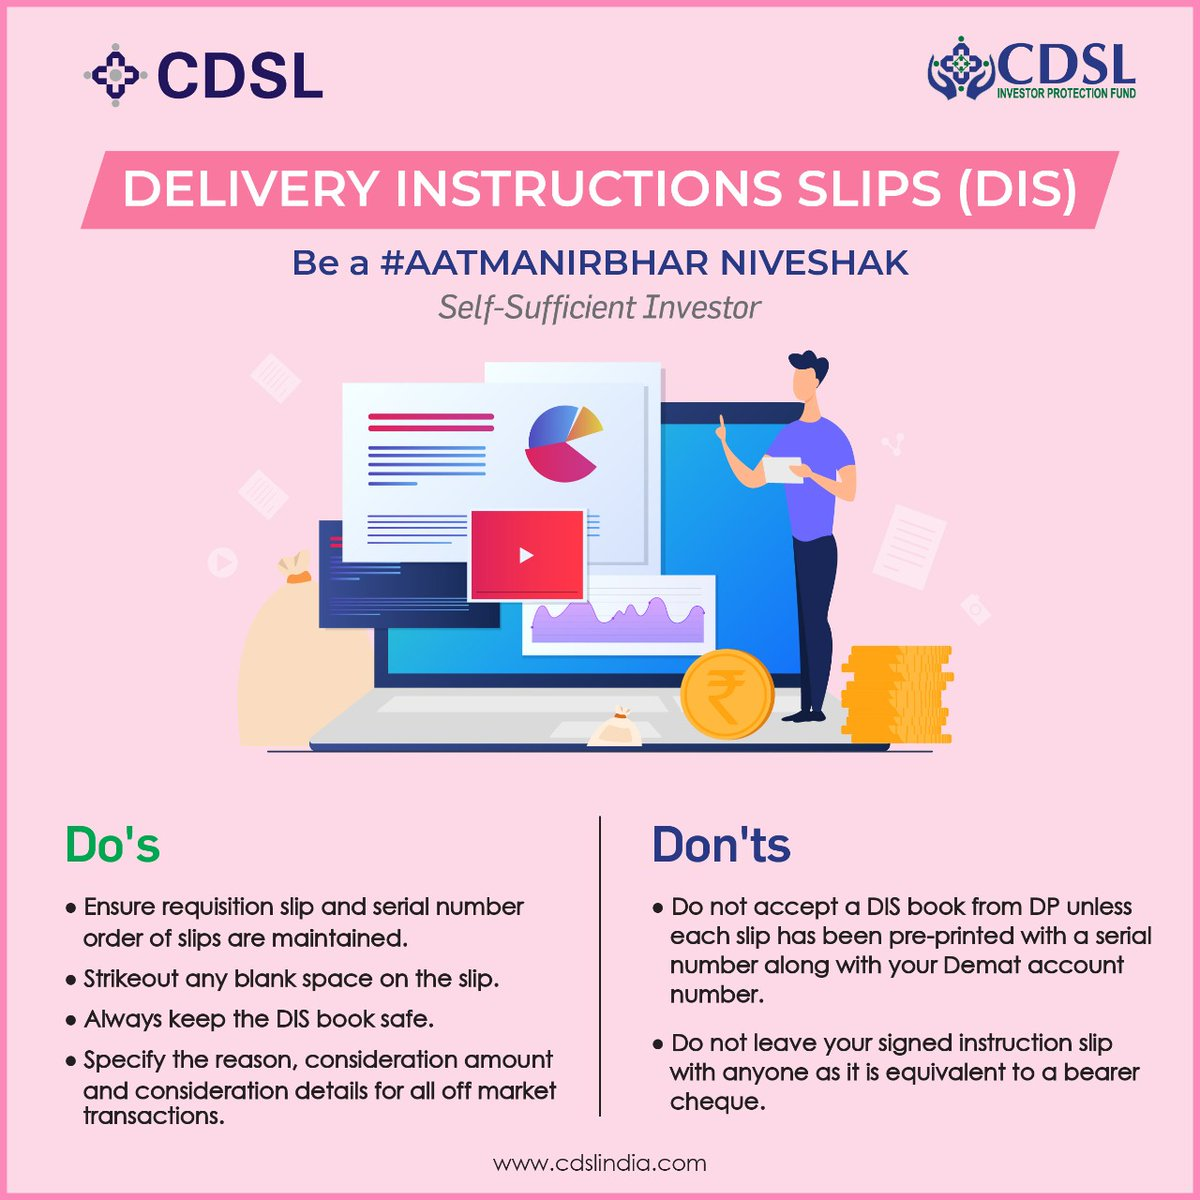 The 4th step to be an #AatmanirbharNiveshak or #Self-SufficientInvestor by CDSL. Stay aware of the necessities  DIS or Delivery Instructions. This #InvestorAwarenessWeek, stay tuned for further more insightful tips from CDSL.  #wiw #demataccount #stockmarket #stockmarketinvesting